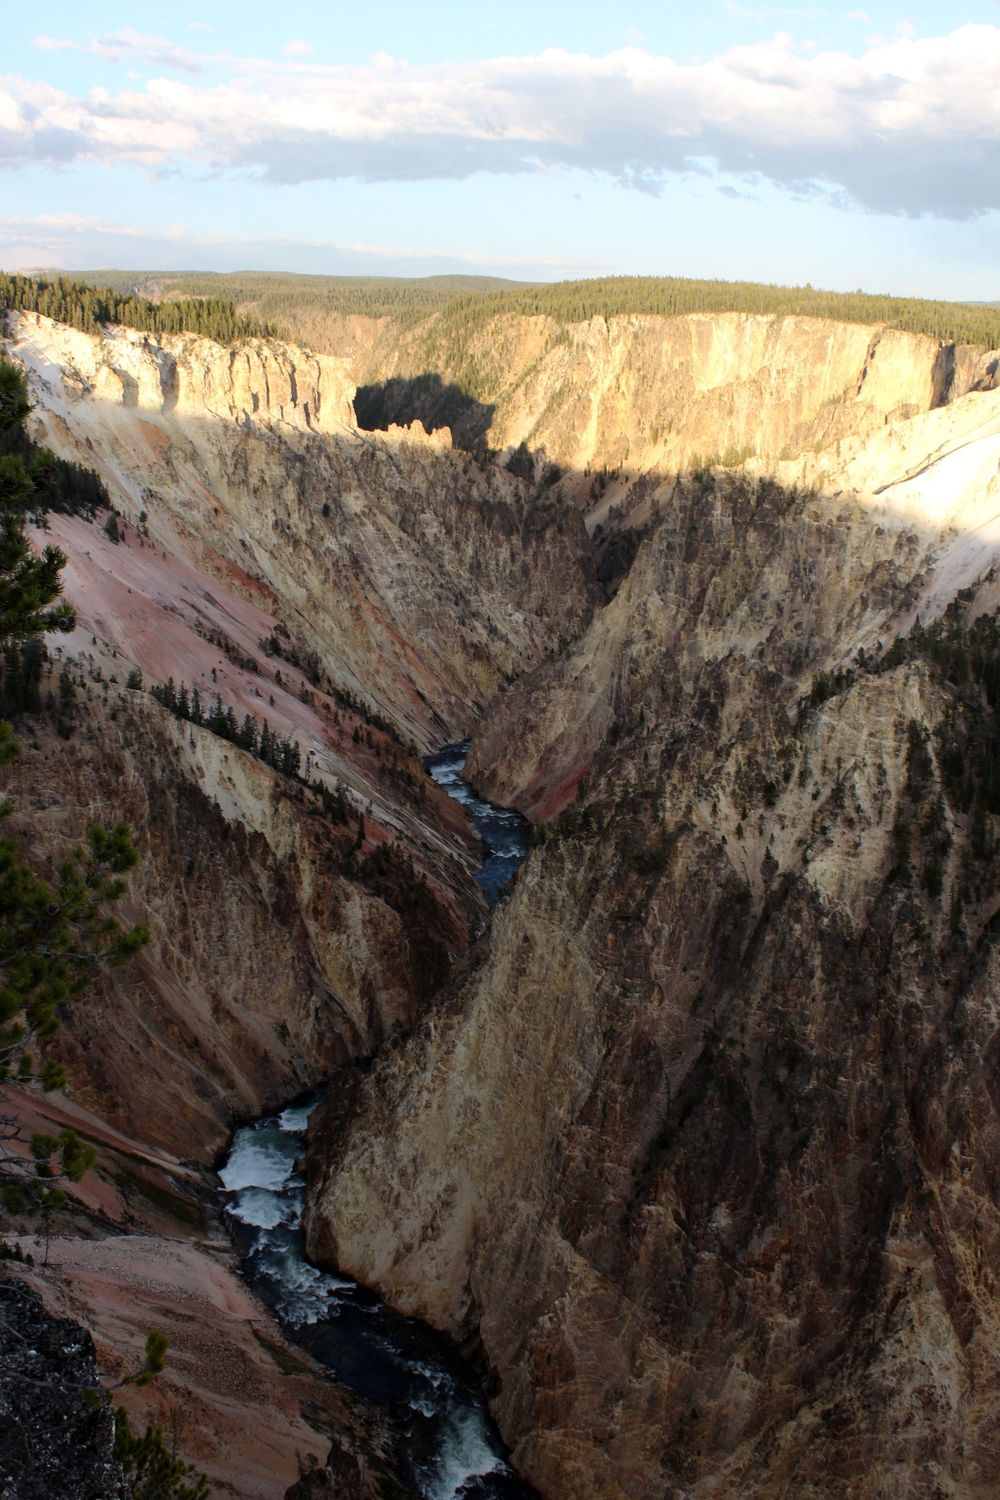 Canyon du Yellowstone, Yellowstone National Park, WY, USA